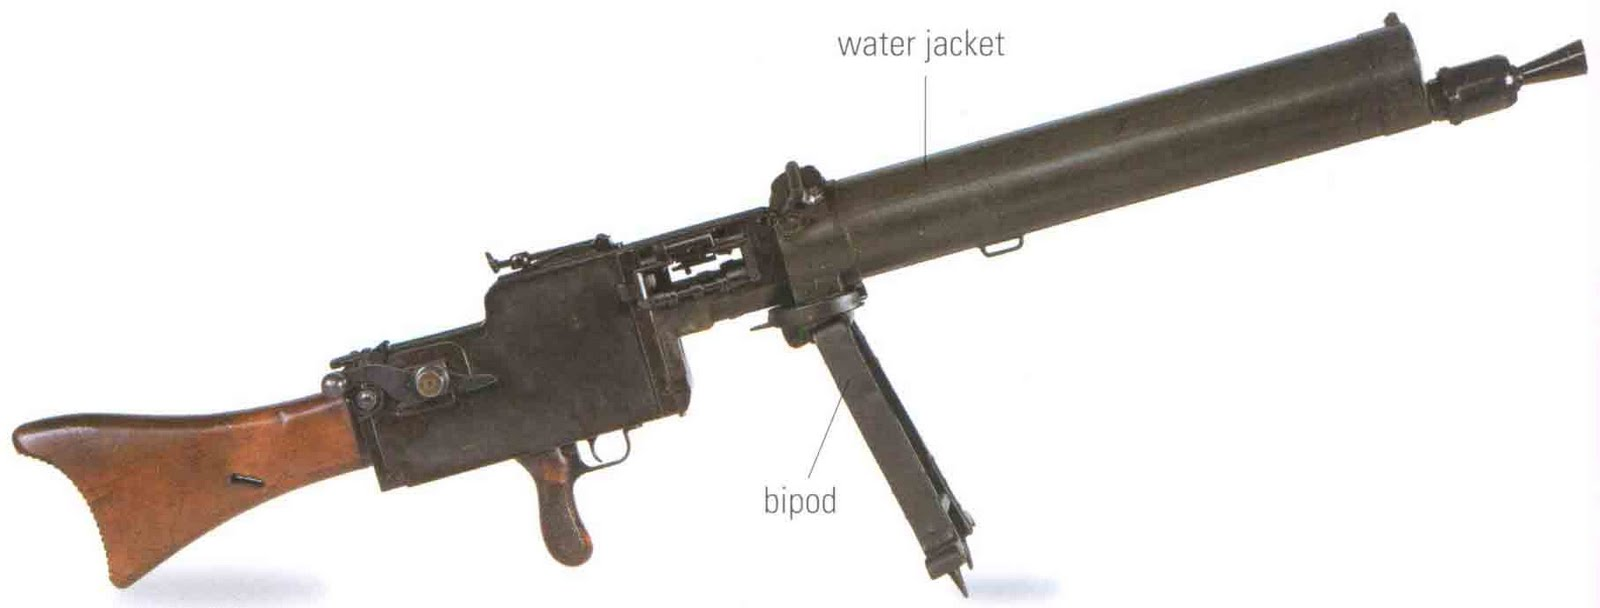 The encyclopedia of weapons: World War I survivors